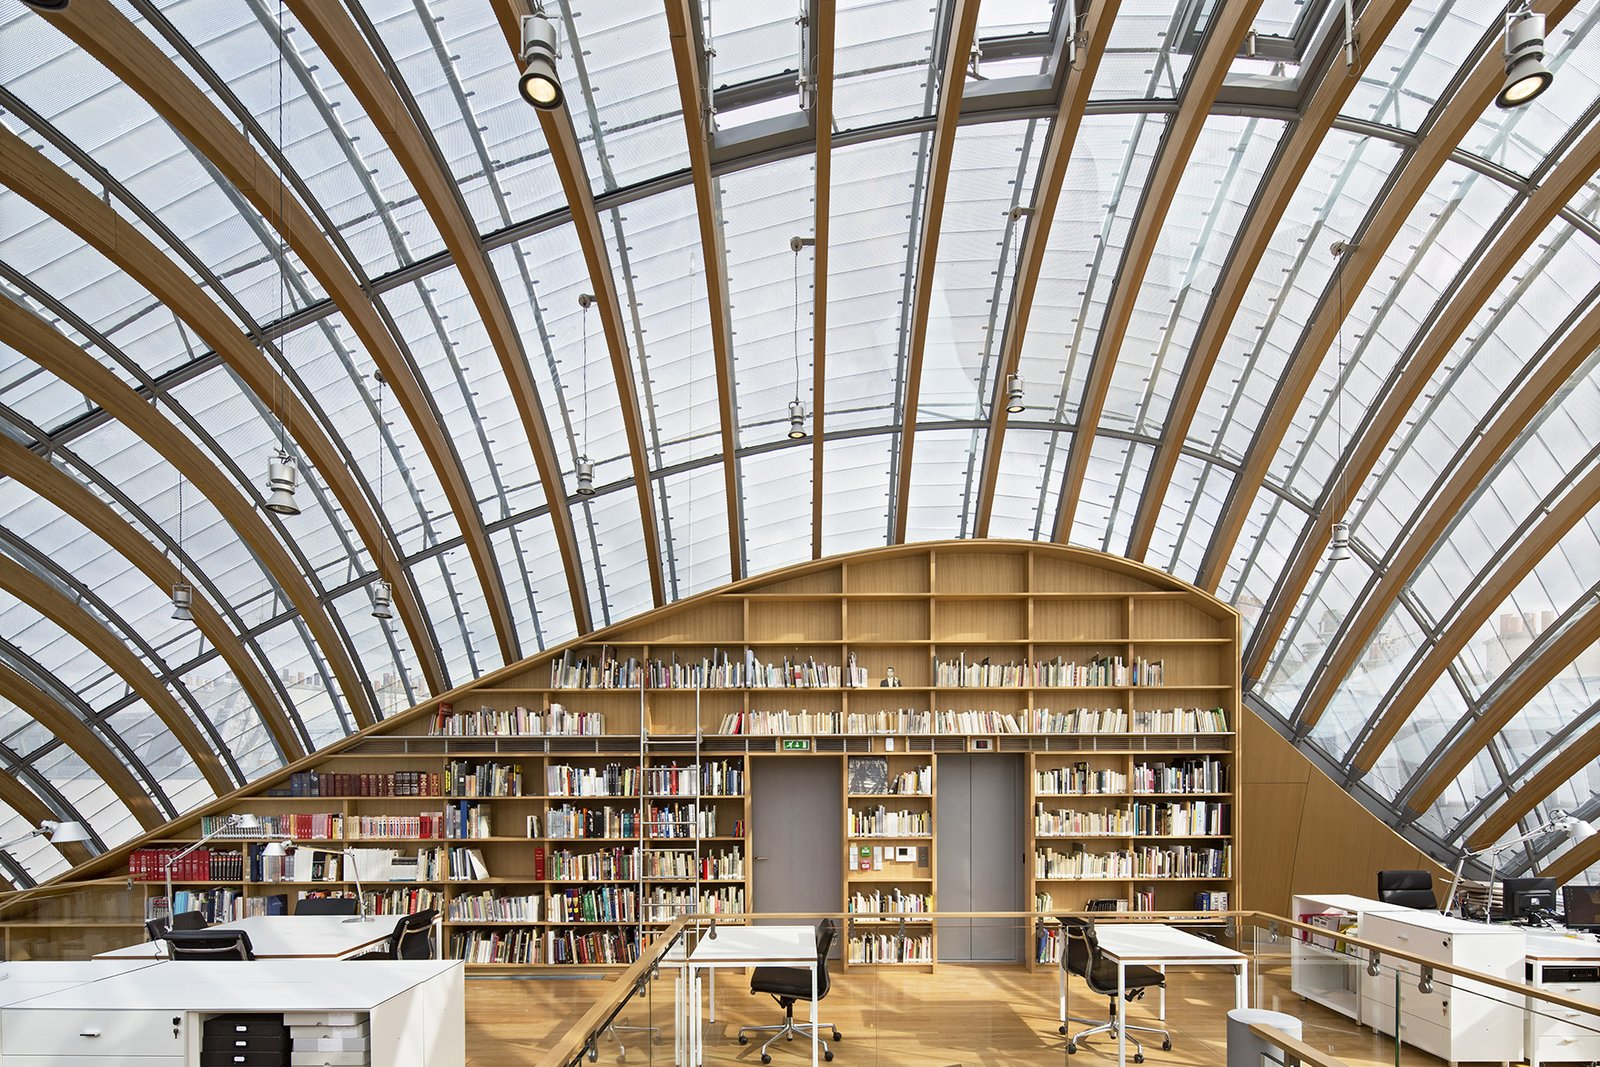 Office, Bookcase, Light Hardwood Floor, Chair, Library Room Type, Desk, Shelves, Lamps, and Storage Imitating the form of an armadillo, this critically acclaimed (some critics have called this one of Renzo Piano Building Workshop's best works) 23,000-square-foot, five-story structure houses offices, archives, exhibition space, and a 70-seat screening room for the foundation is dedicated to celebrating the legacy of the pioneering French film company.  Photo 6 of 13 in 12 Renzo Piano Buildings We Love